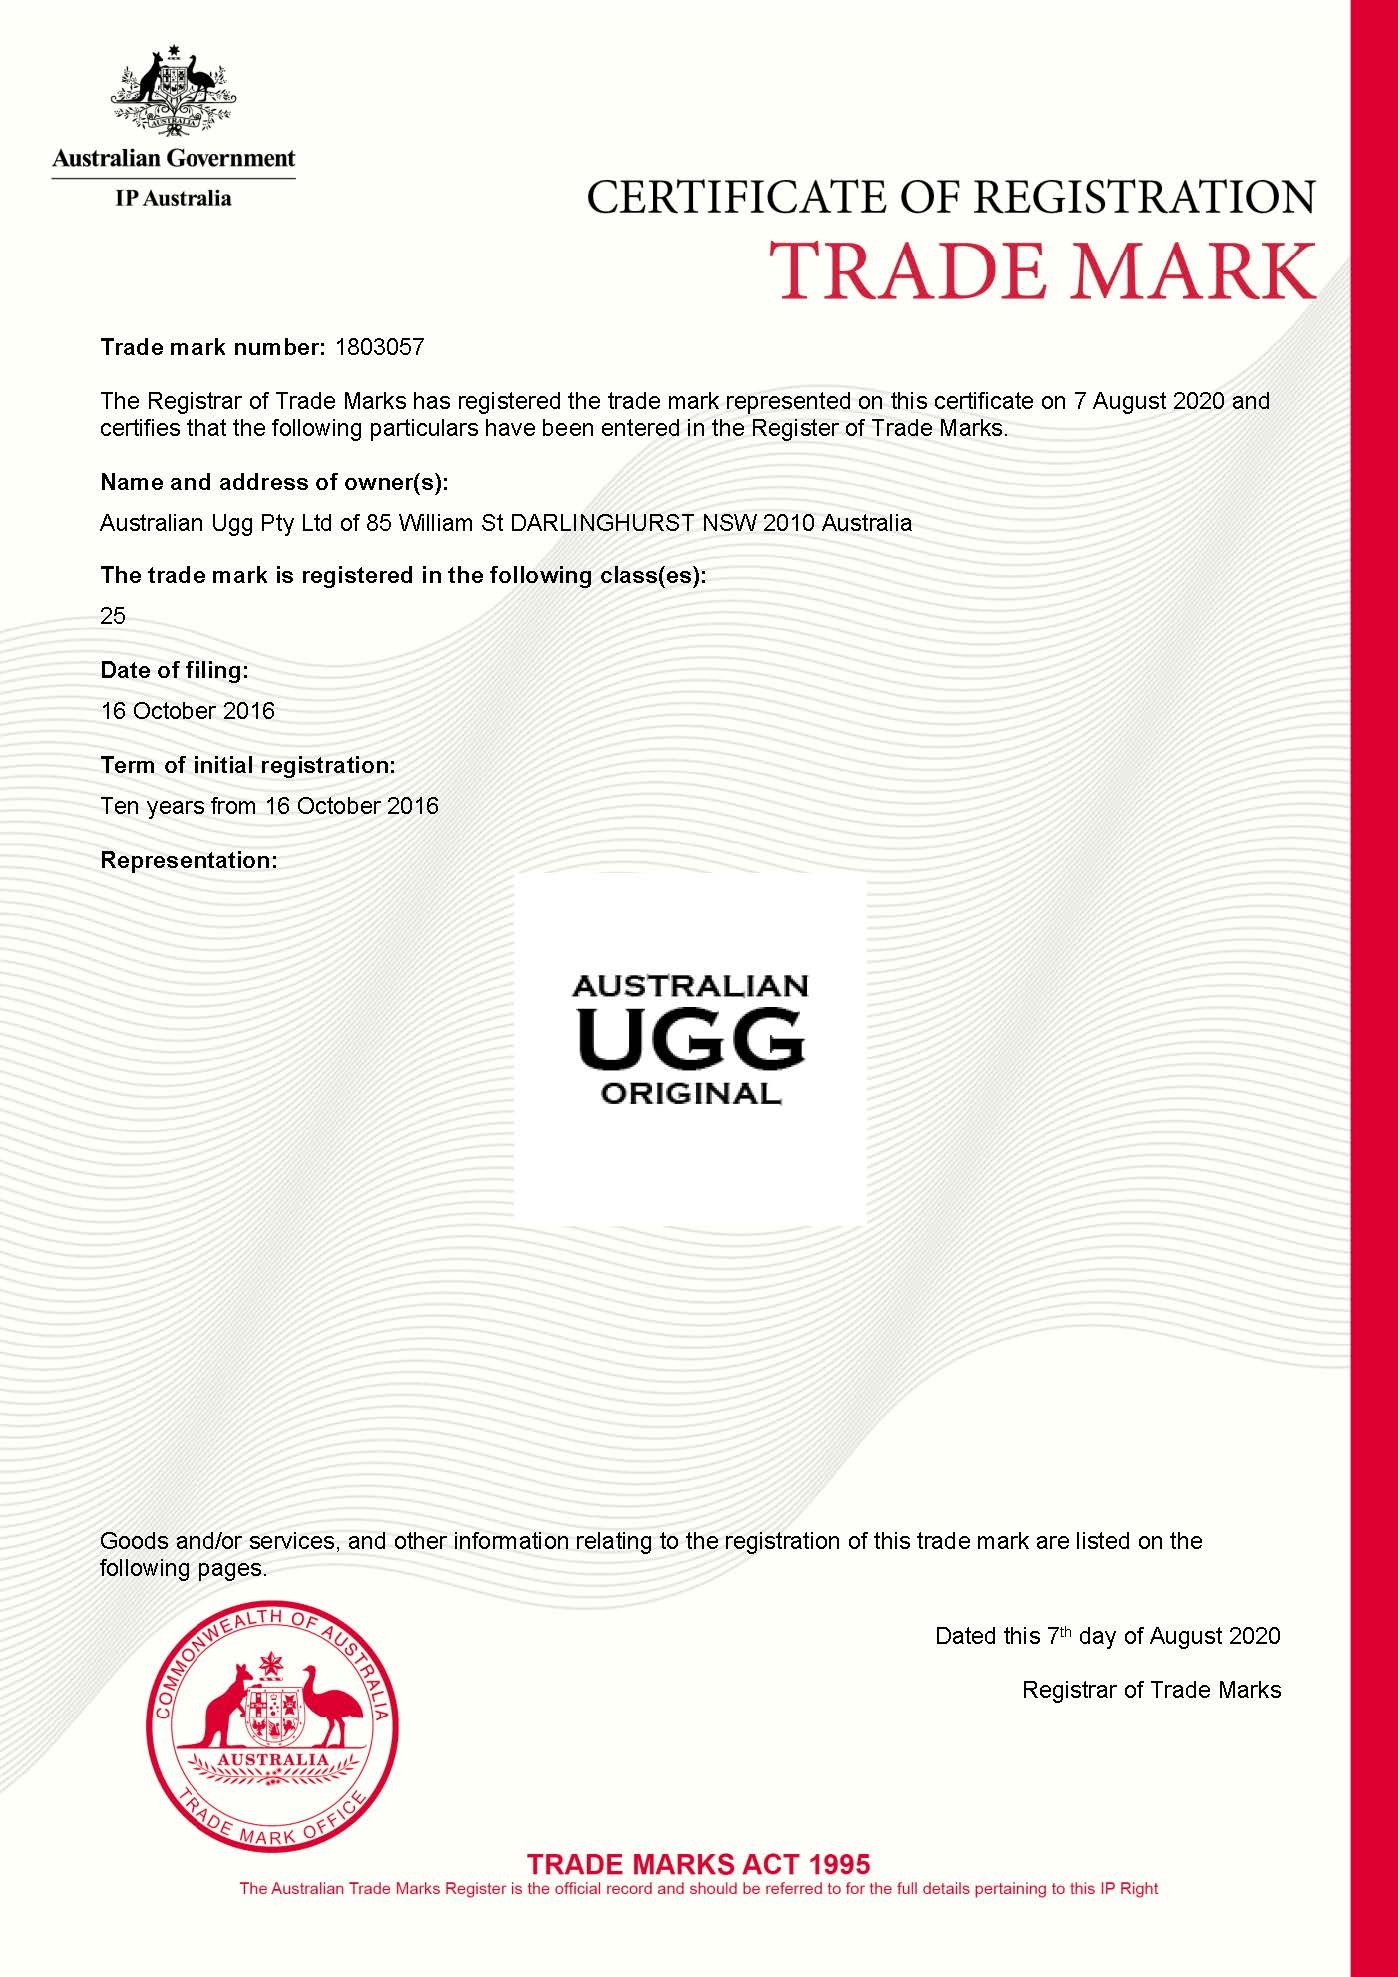 AUSTRALIAN UGG ORIGINAL Trade Mark Certificate 1803057